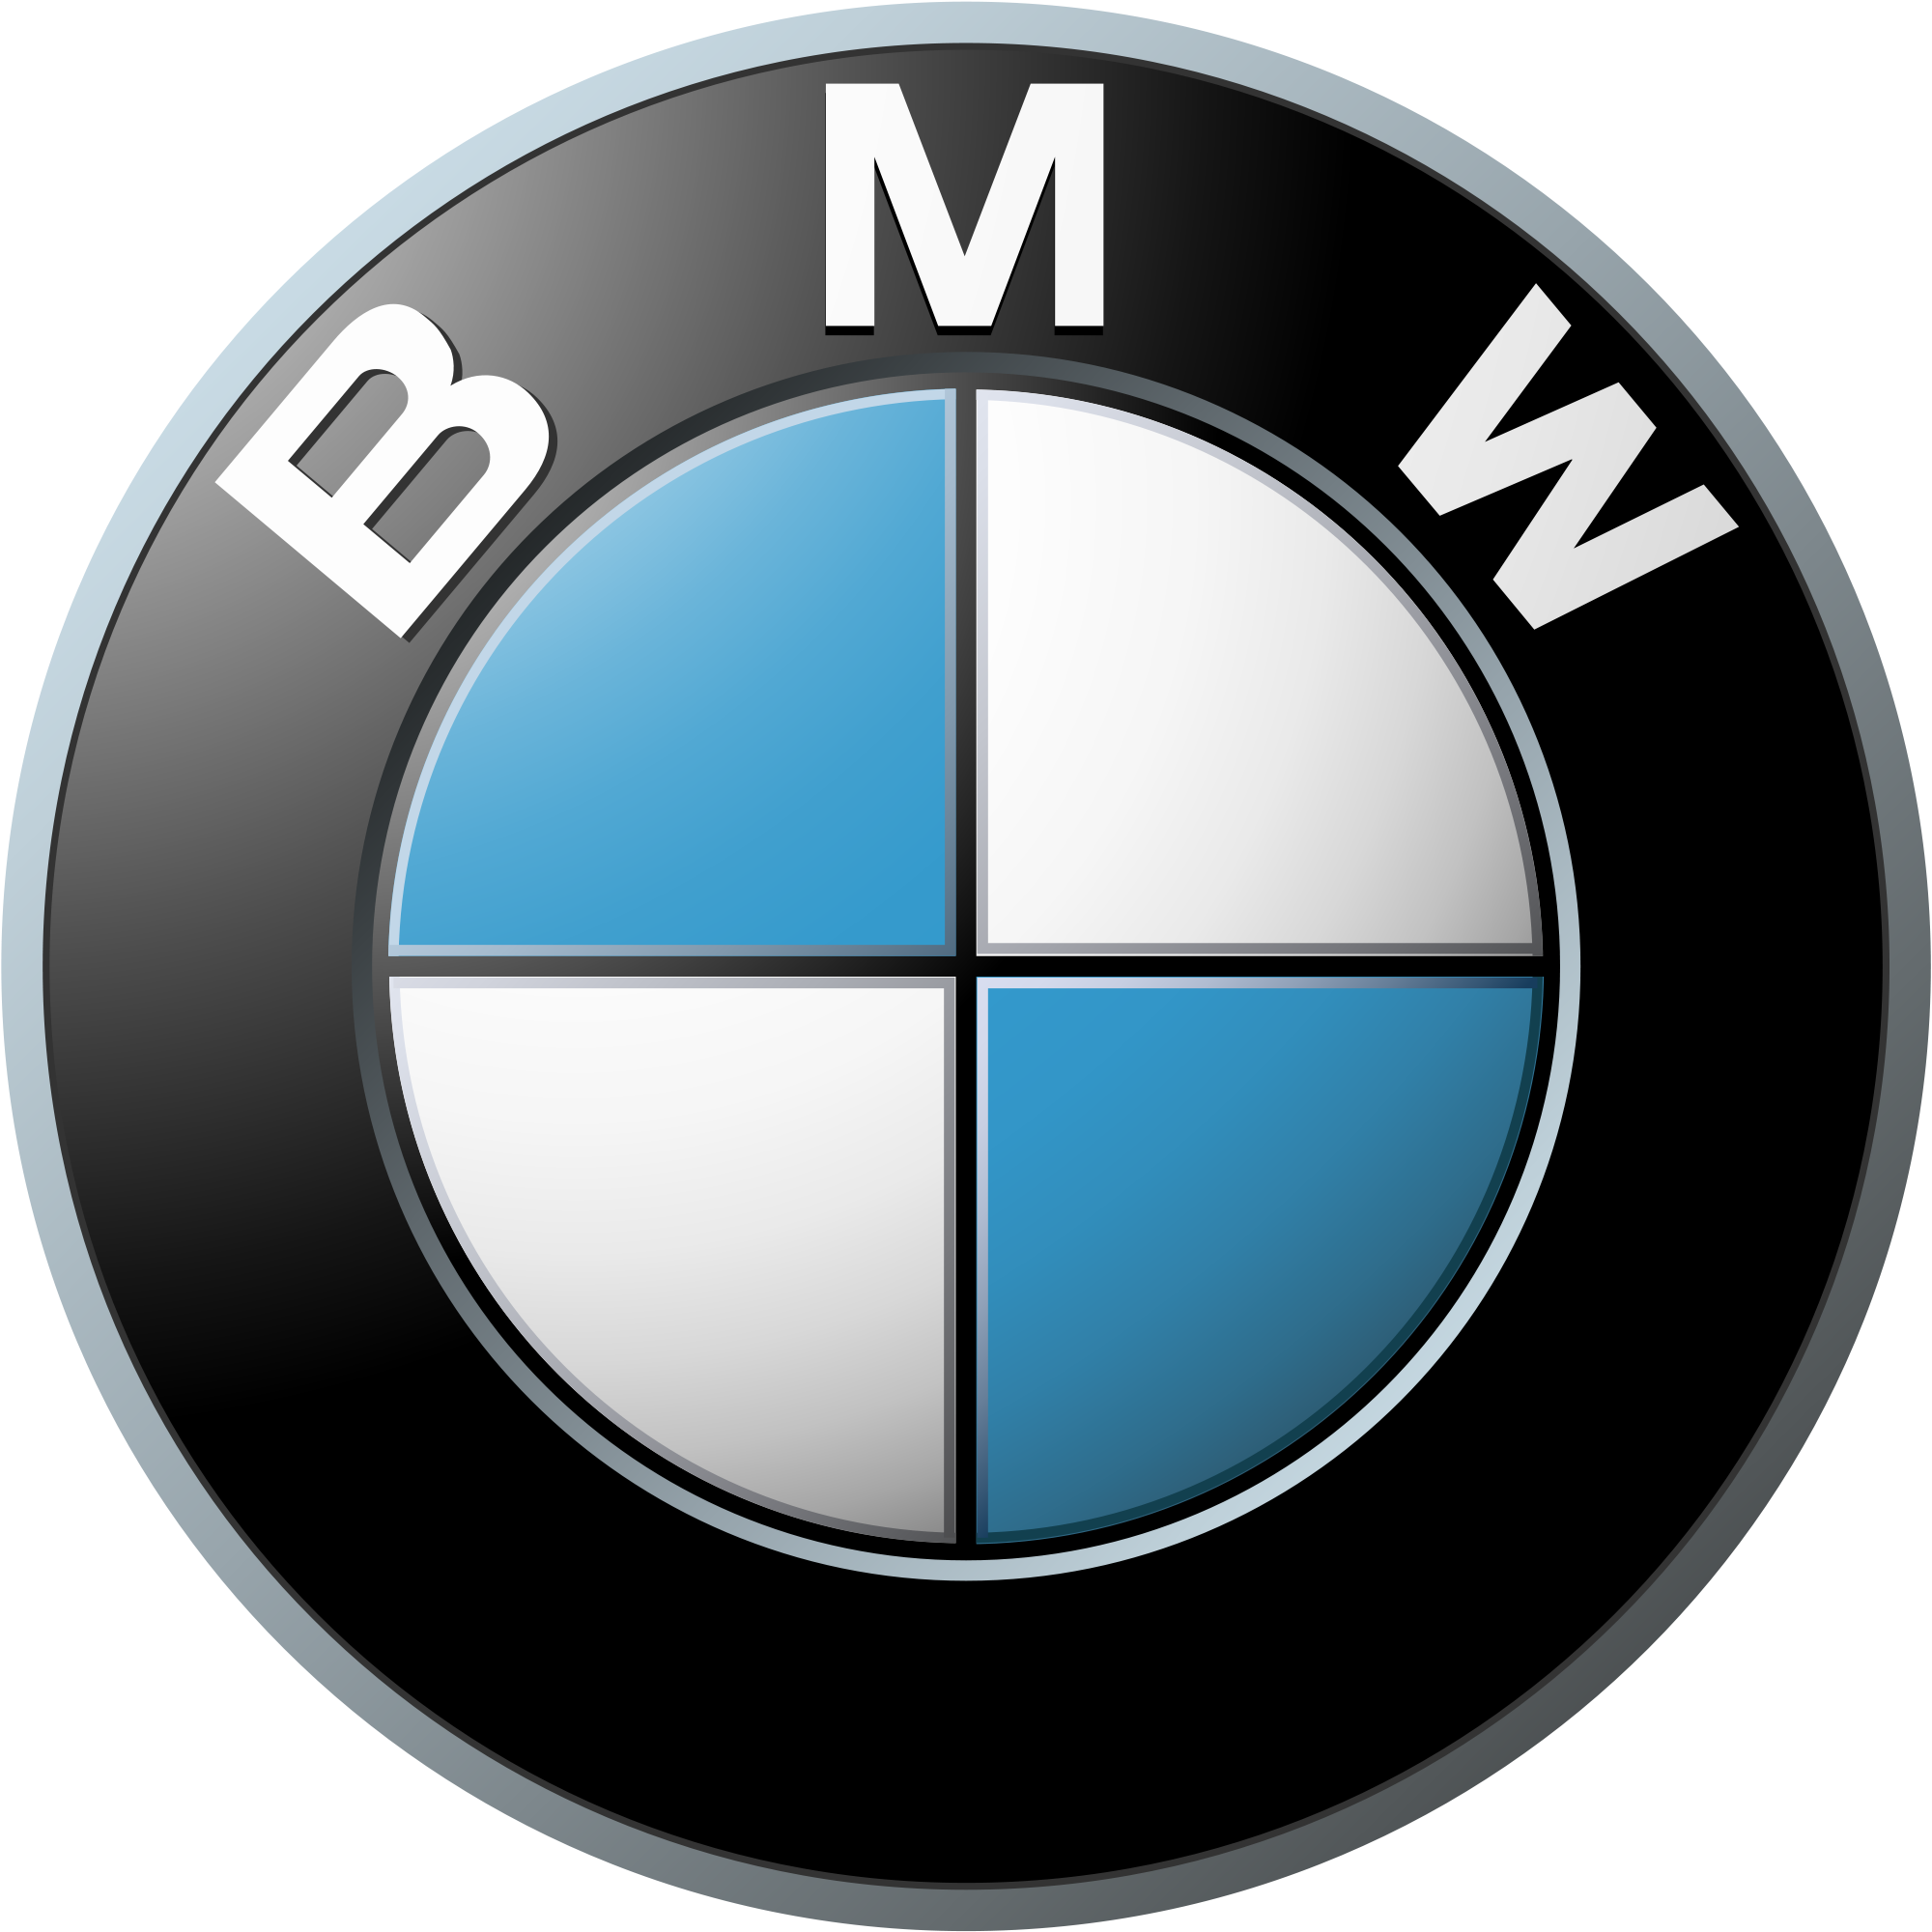 Bmw roundel png. Logo images free download